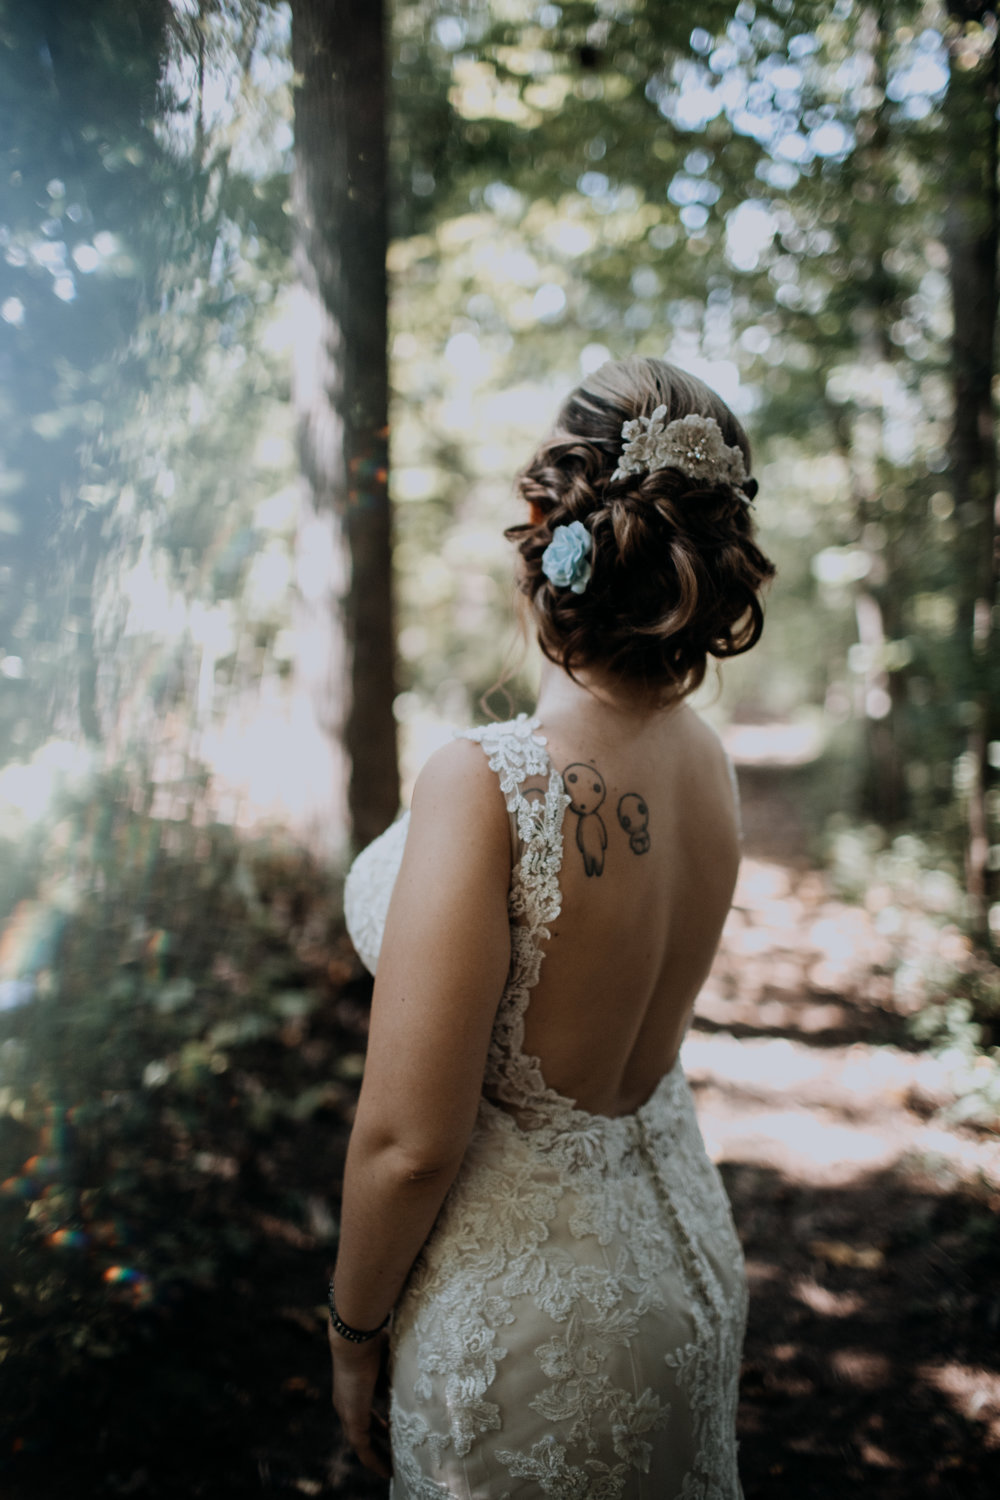 Cambria_Creative_Photographer_York_Camp_Cann-edi-on_wedding-3273.jpg